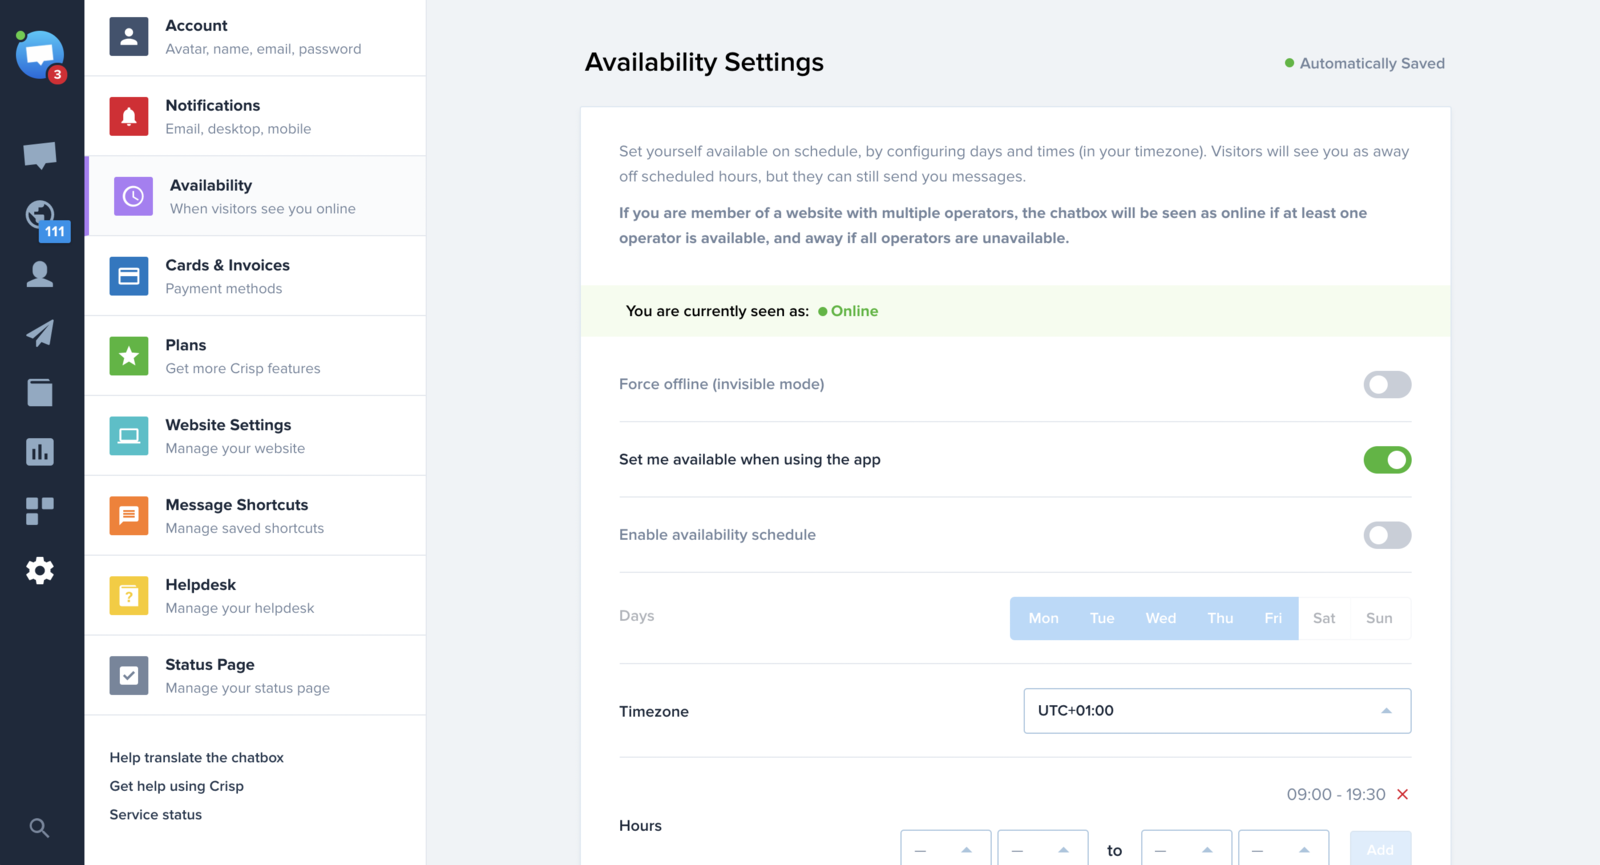 You can enable the online/offline automatic schedule in Availability schedule